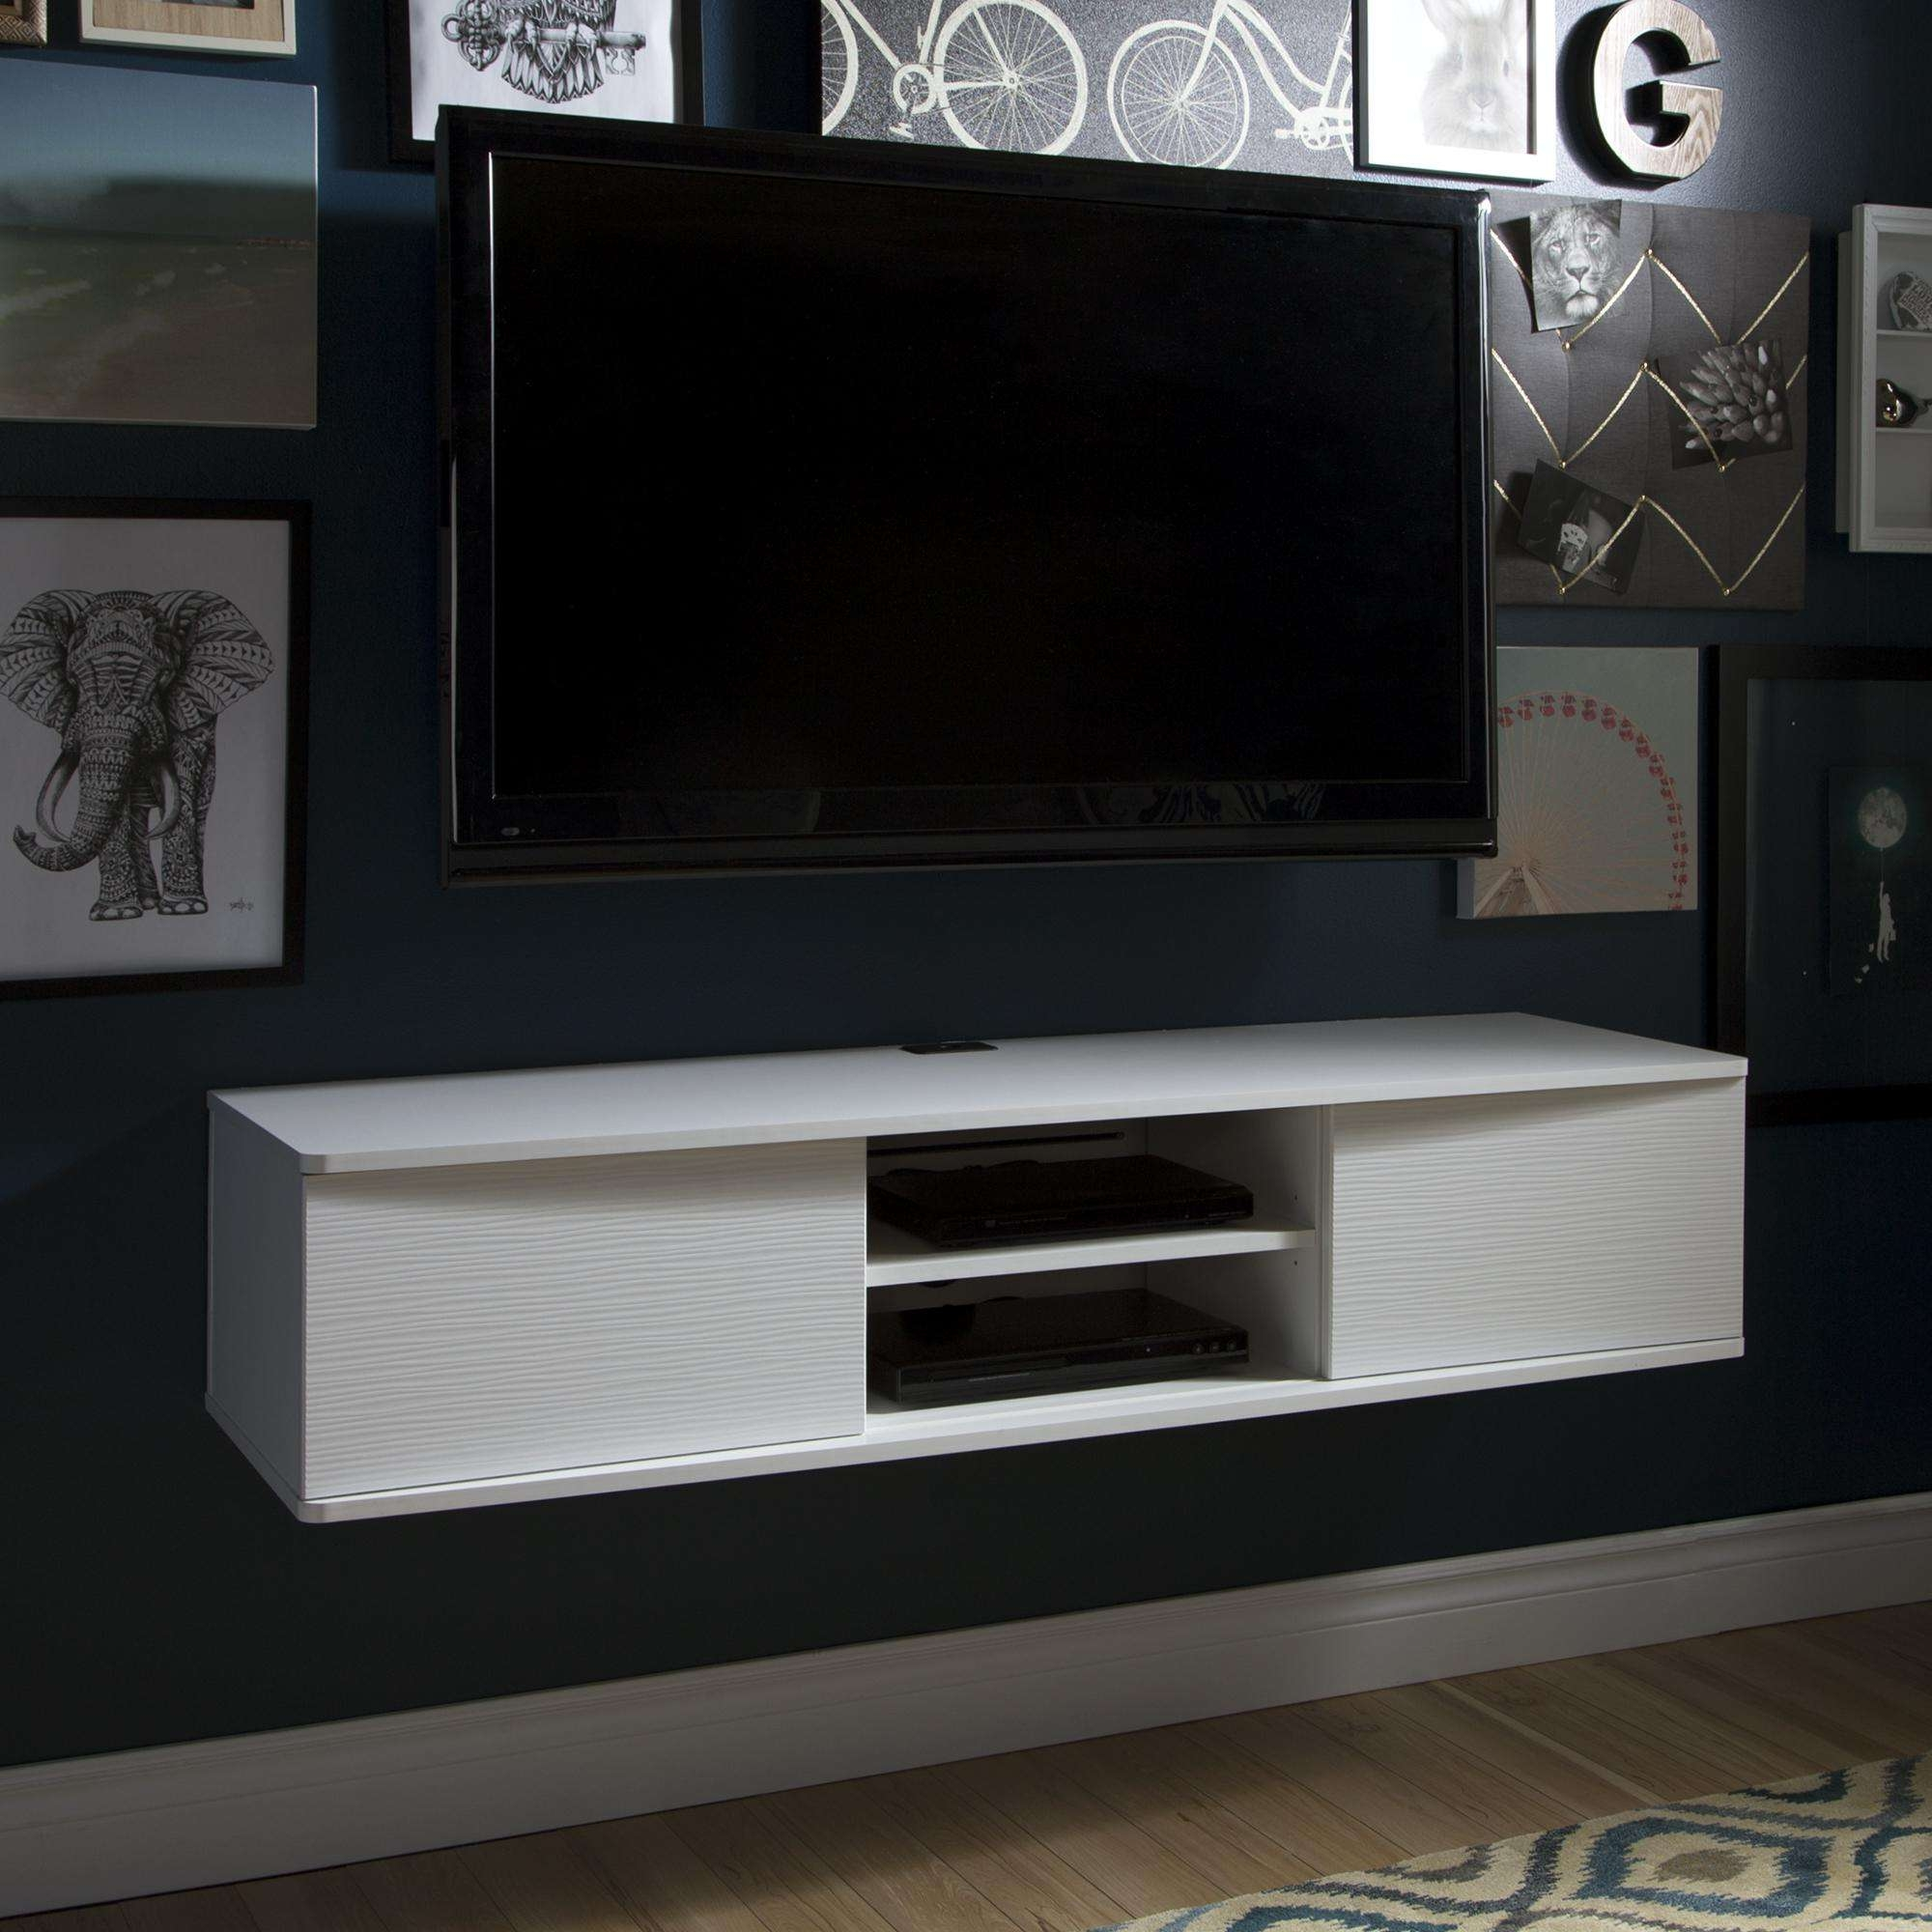 White Wooden Floating Media Cabinet With Shelf Hanging On Grey With Regard To White Wall Mounted Tv Stands (View 3 of 15)